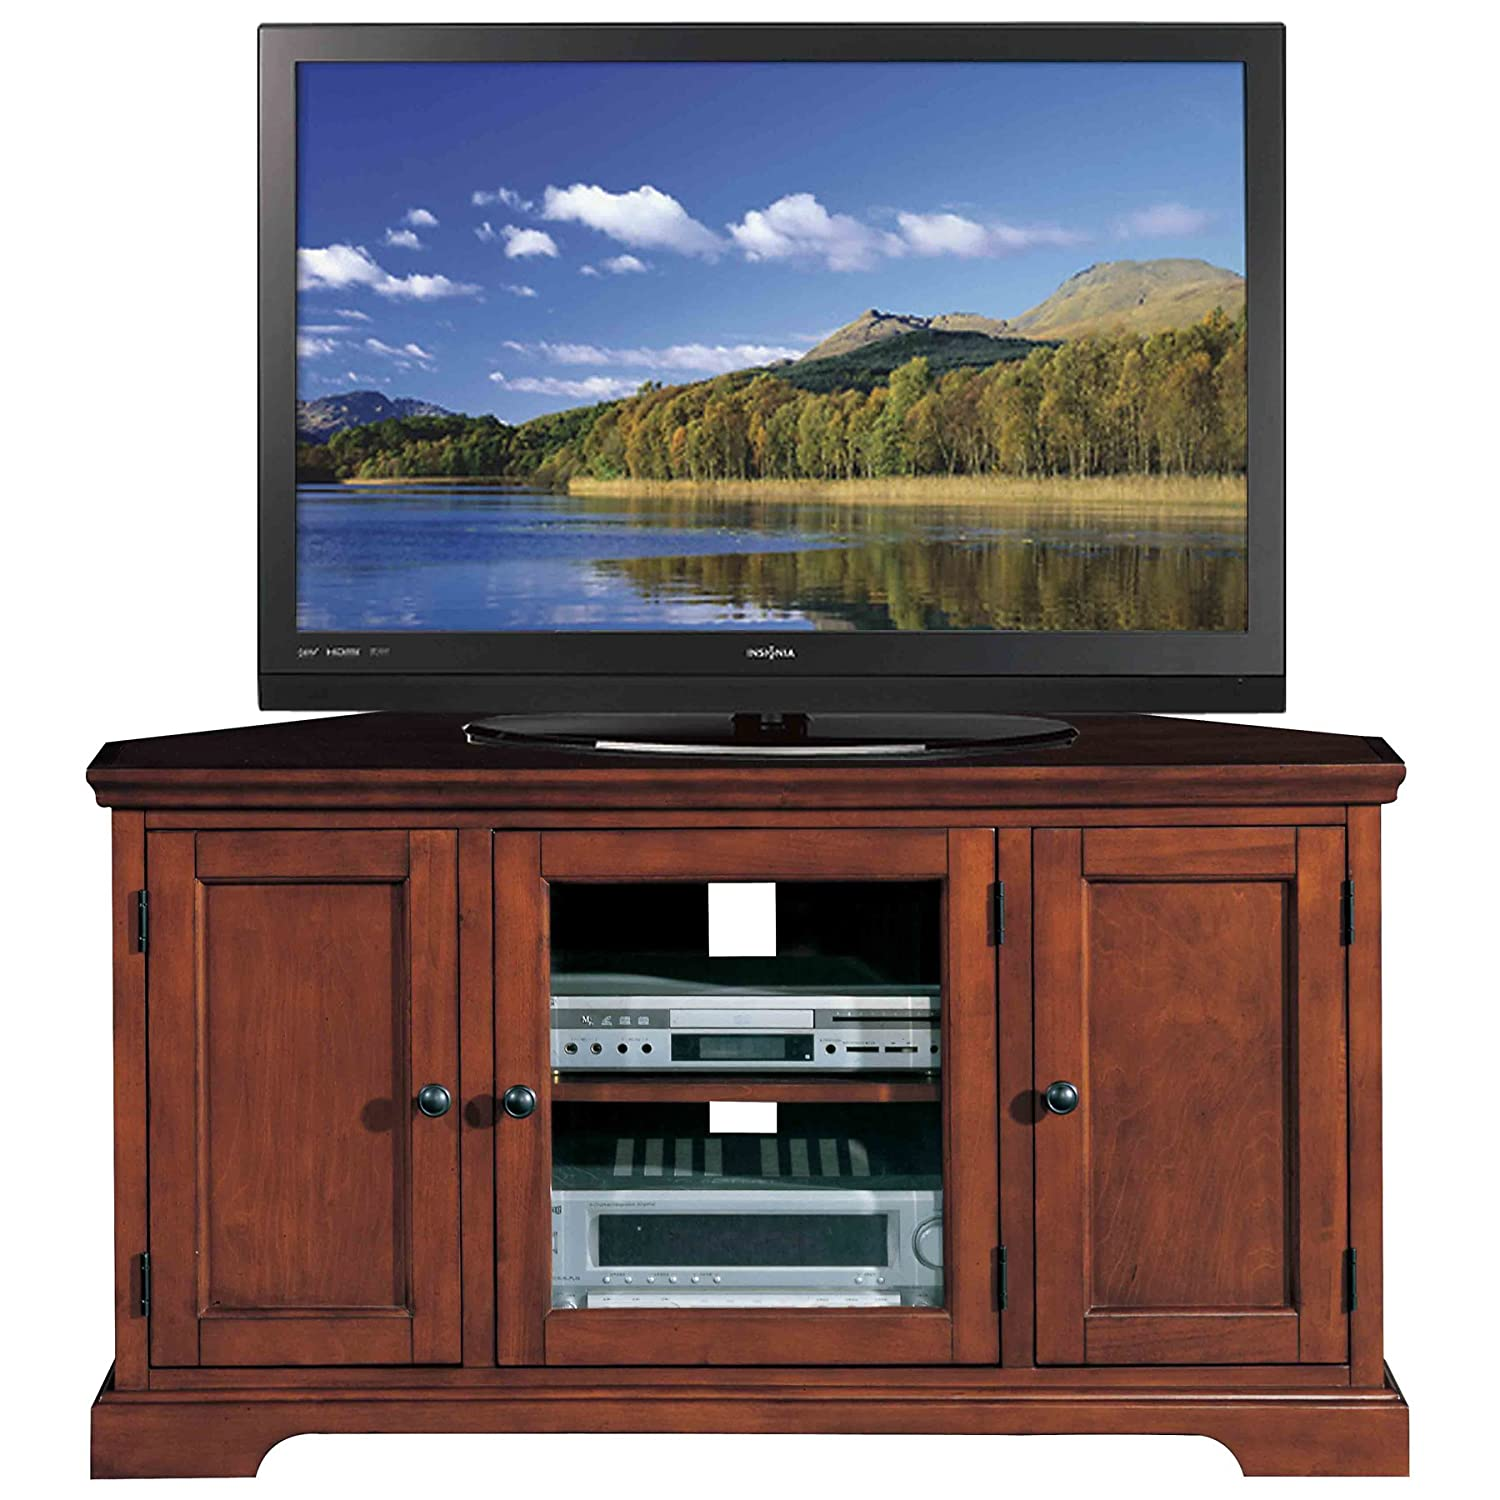 amazon s 10 best deals of the day include a 65 inch 4k tv an hp laptop and more bgr. Black Bedroom Furniture Sets. Home Design Ideas